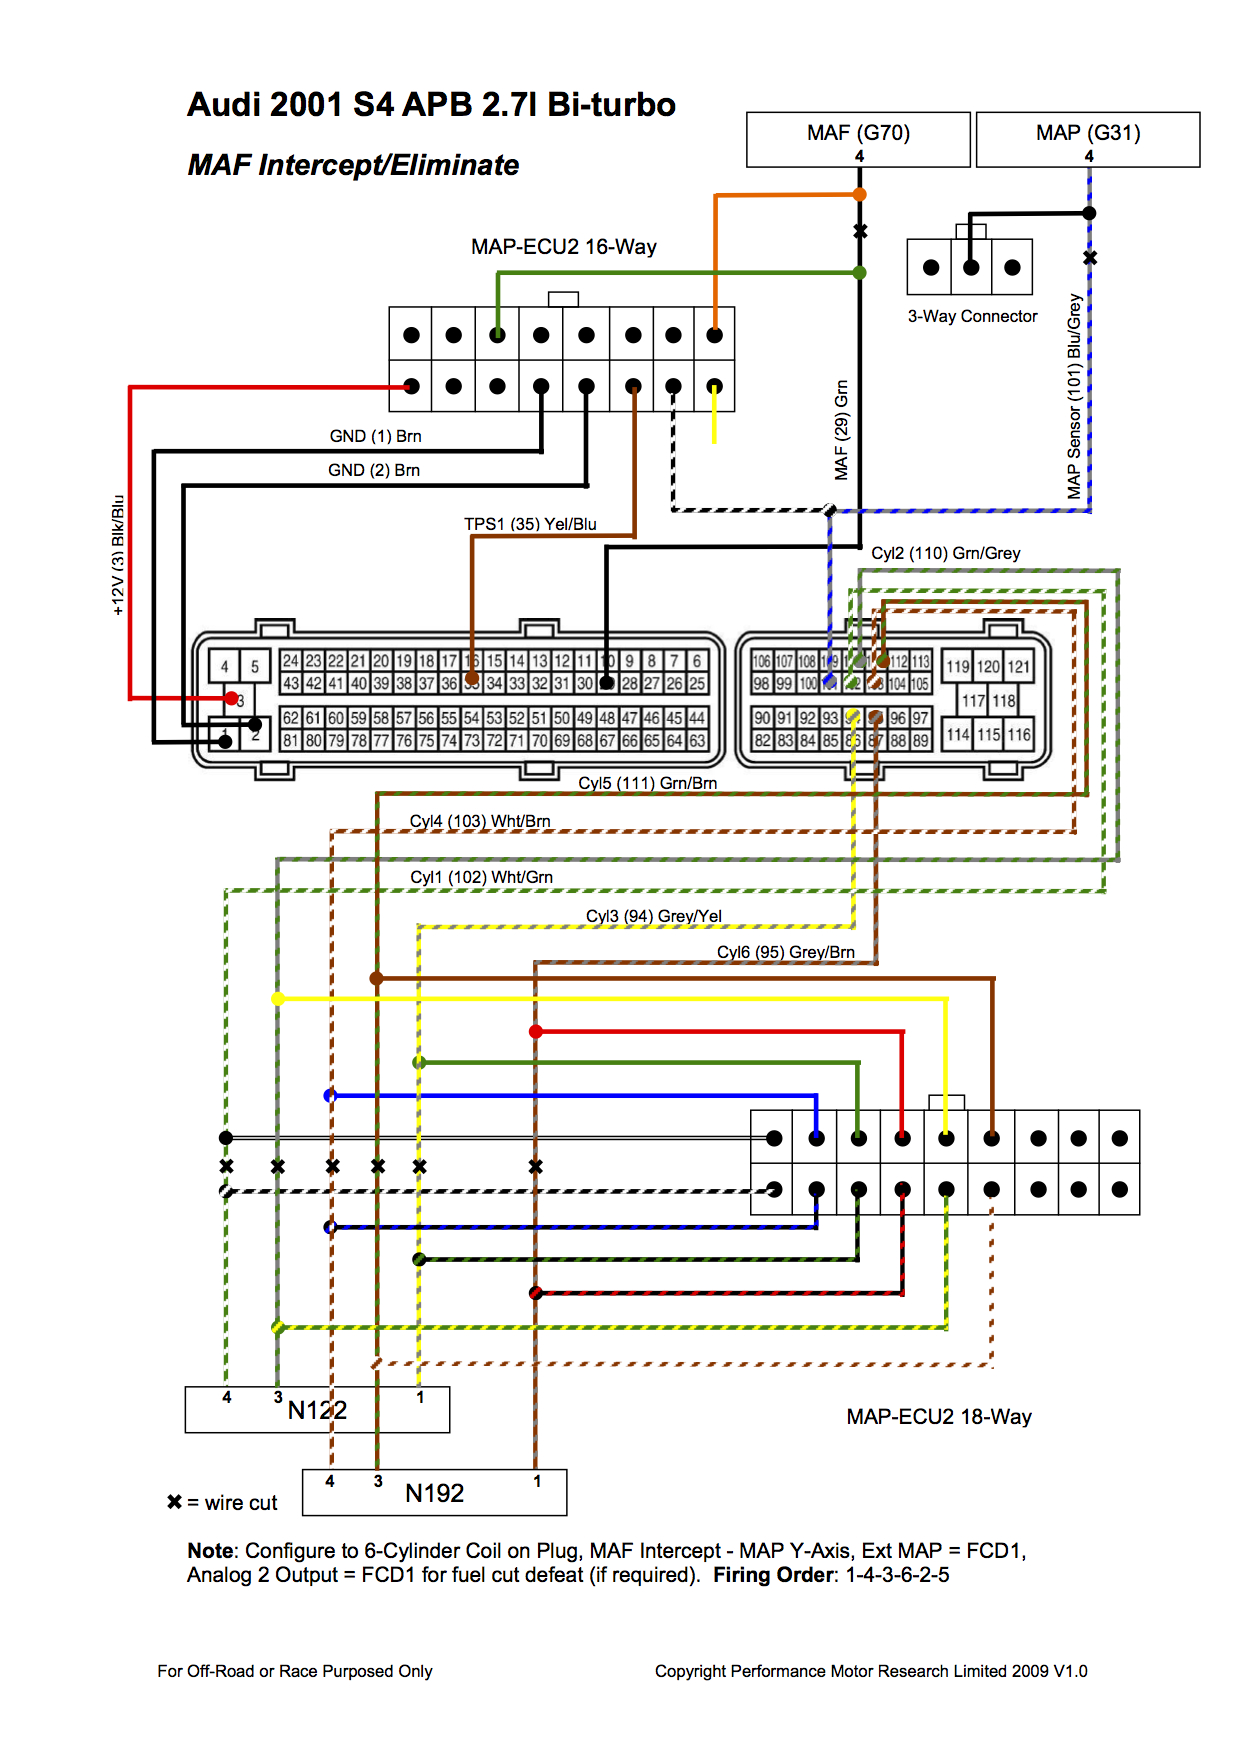 Audi S4 20011 ecu wiring diagram paccar ecu wiring diagram \u2022 wiring diagrams j vw polo 2010 wiring diagram pdf at sewacar.co